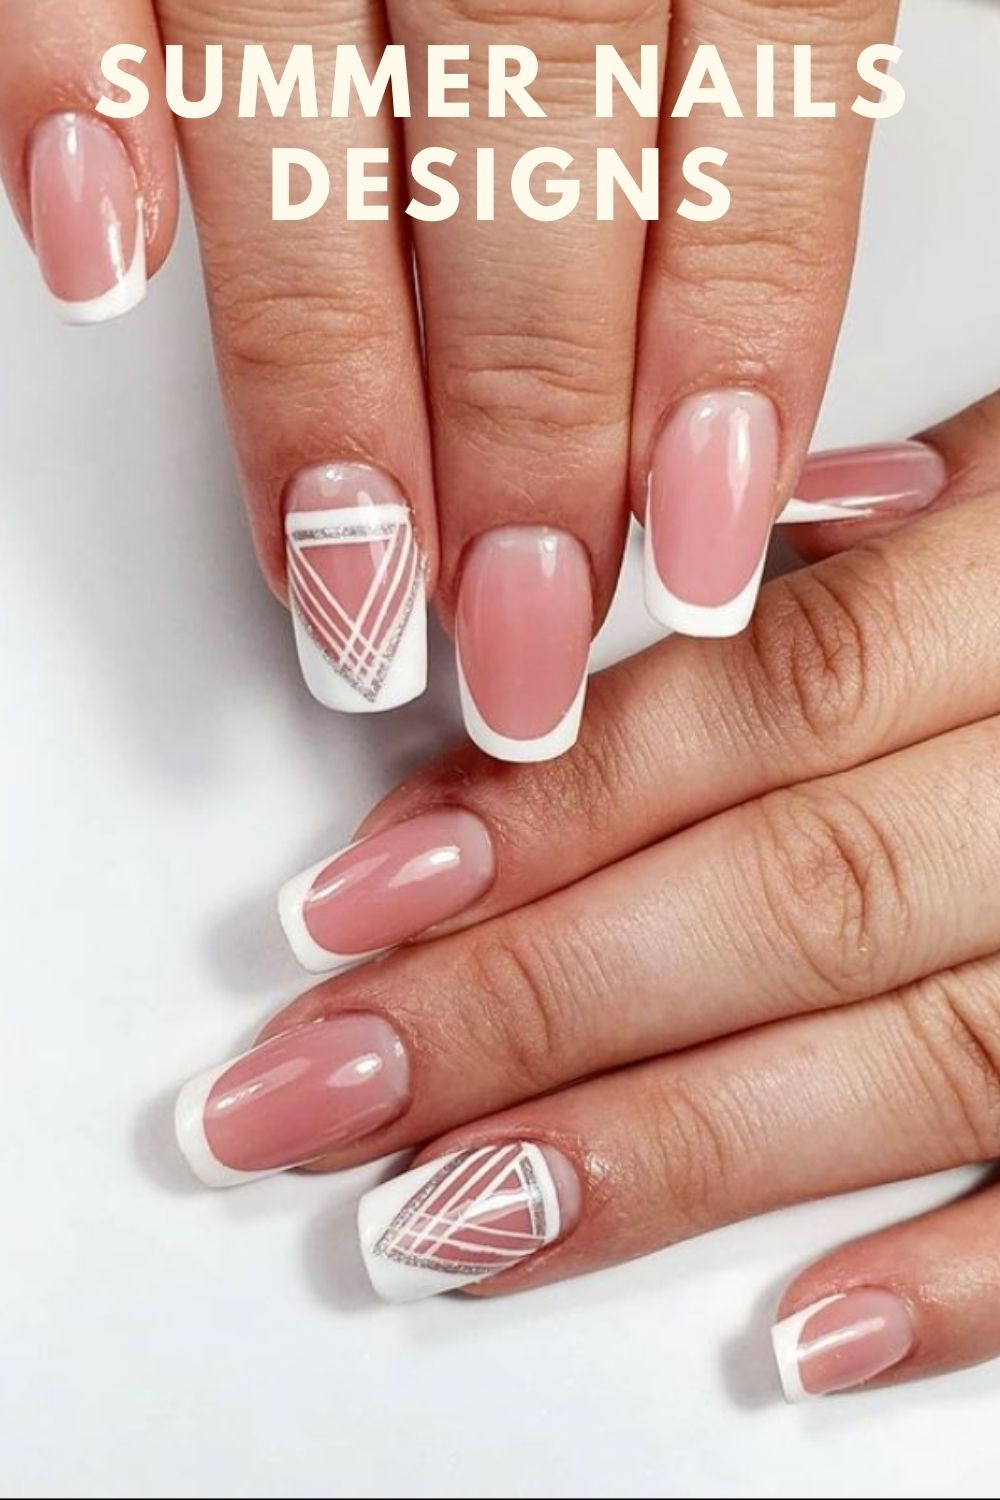 Square nails with pink and white